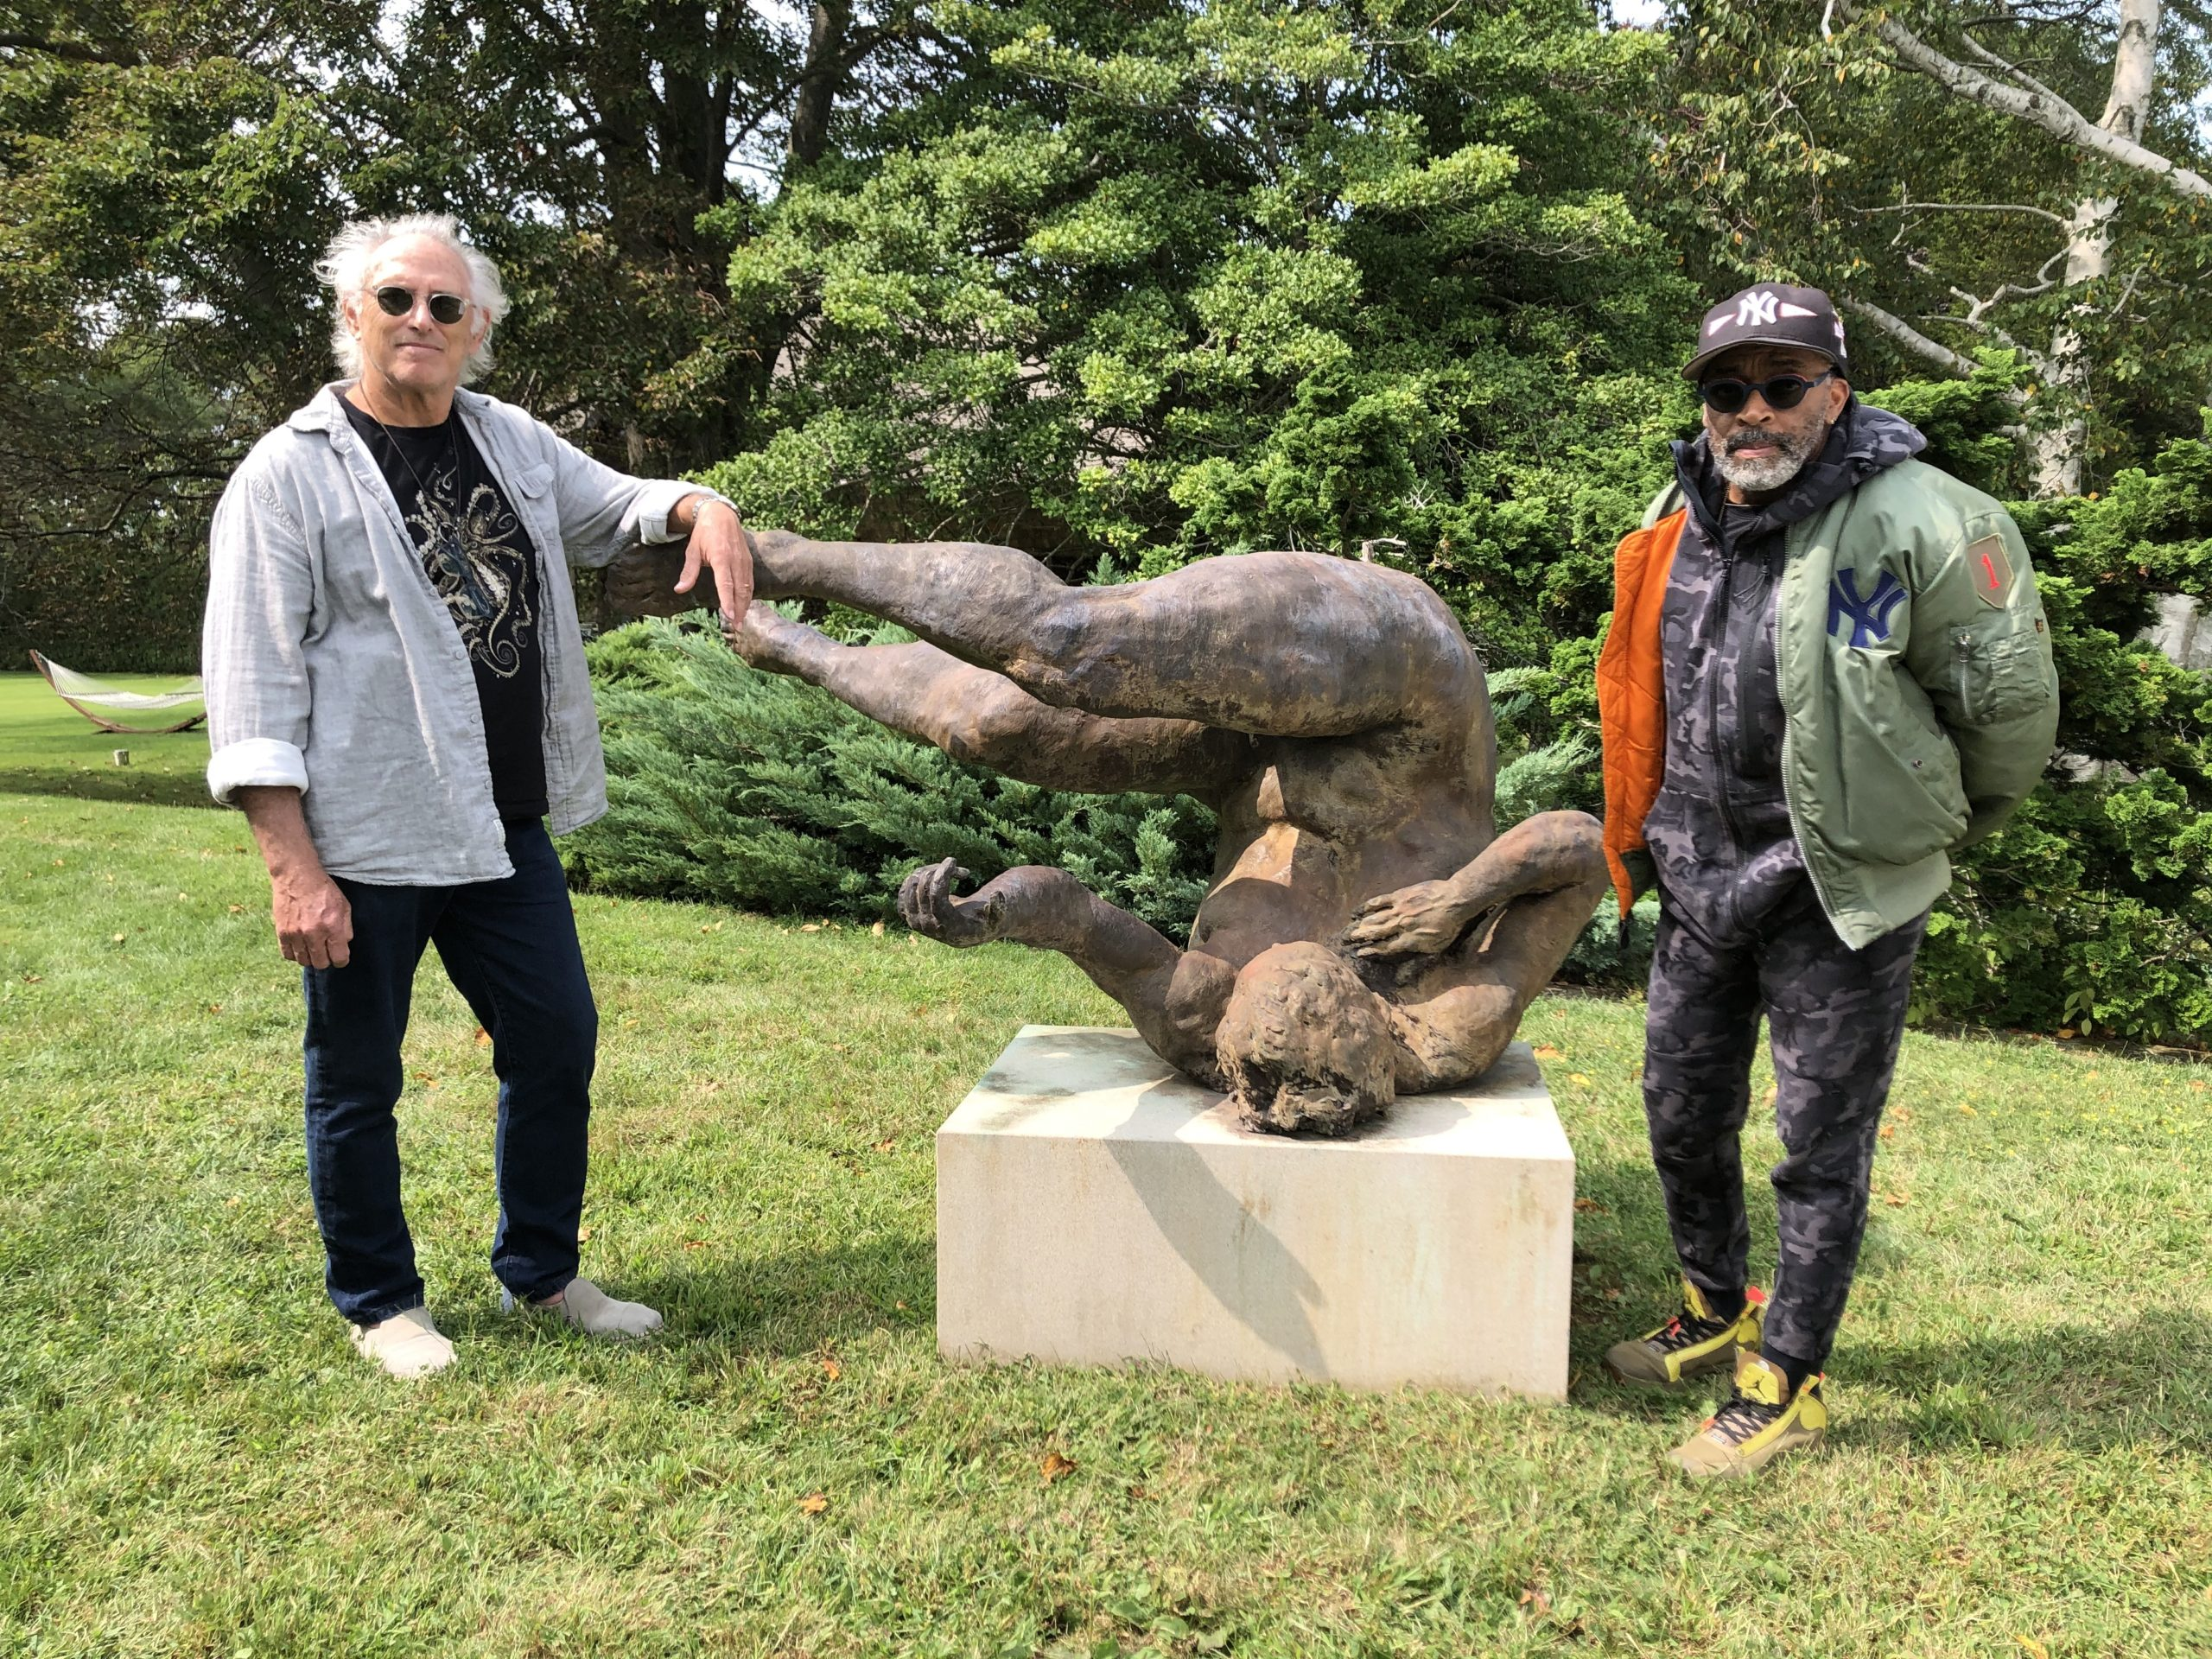 Artist Eric Fischl with director Spike Lee and